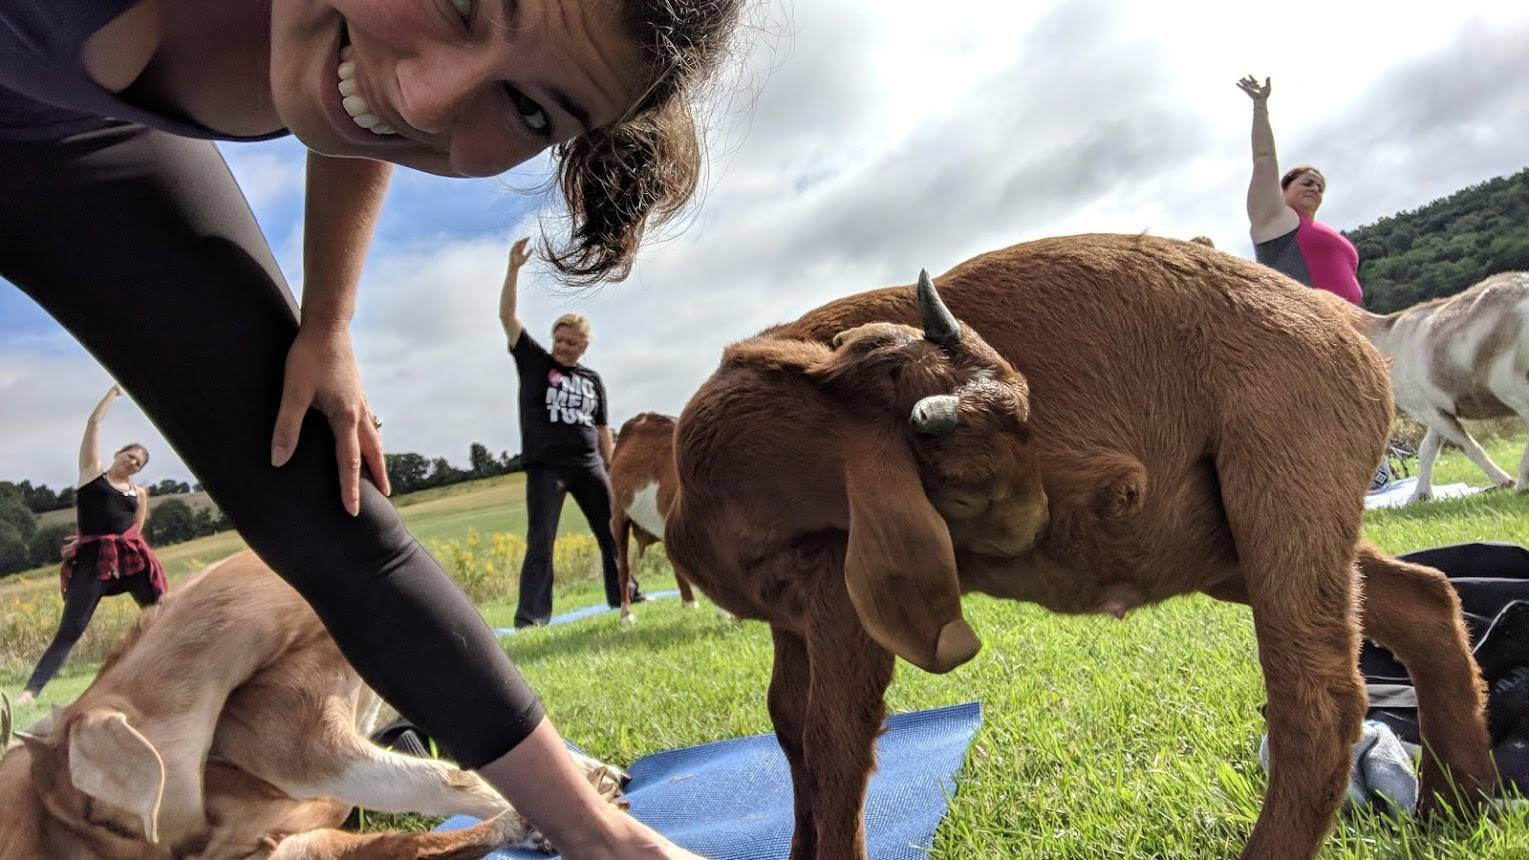 girl doing yoga pose with goat next to her